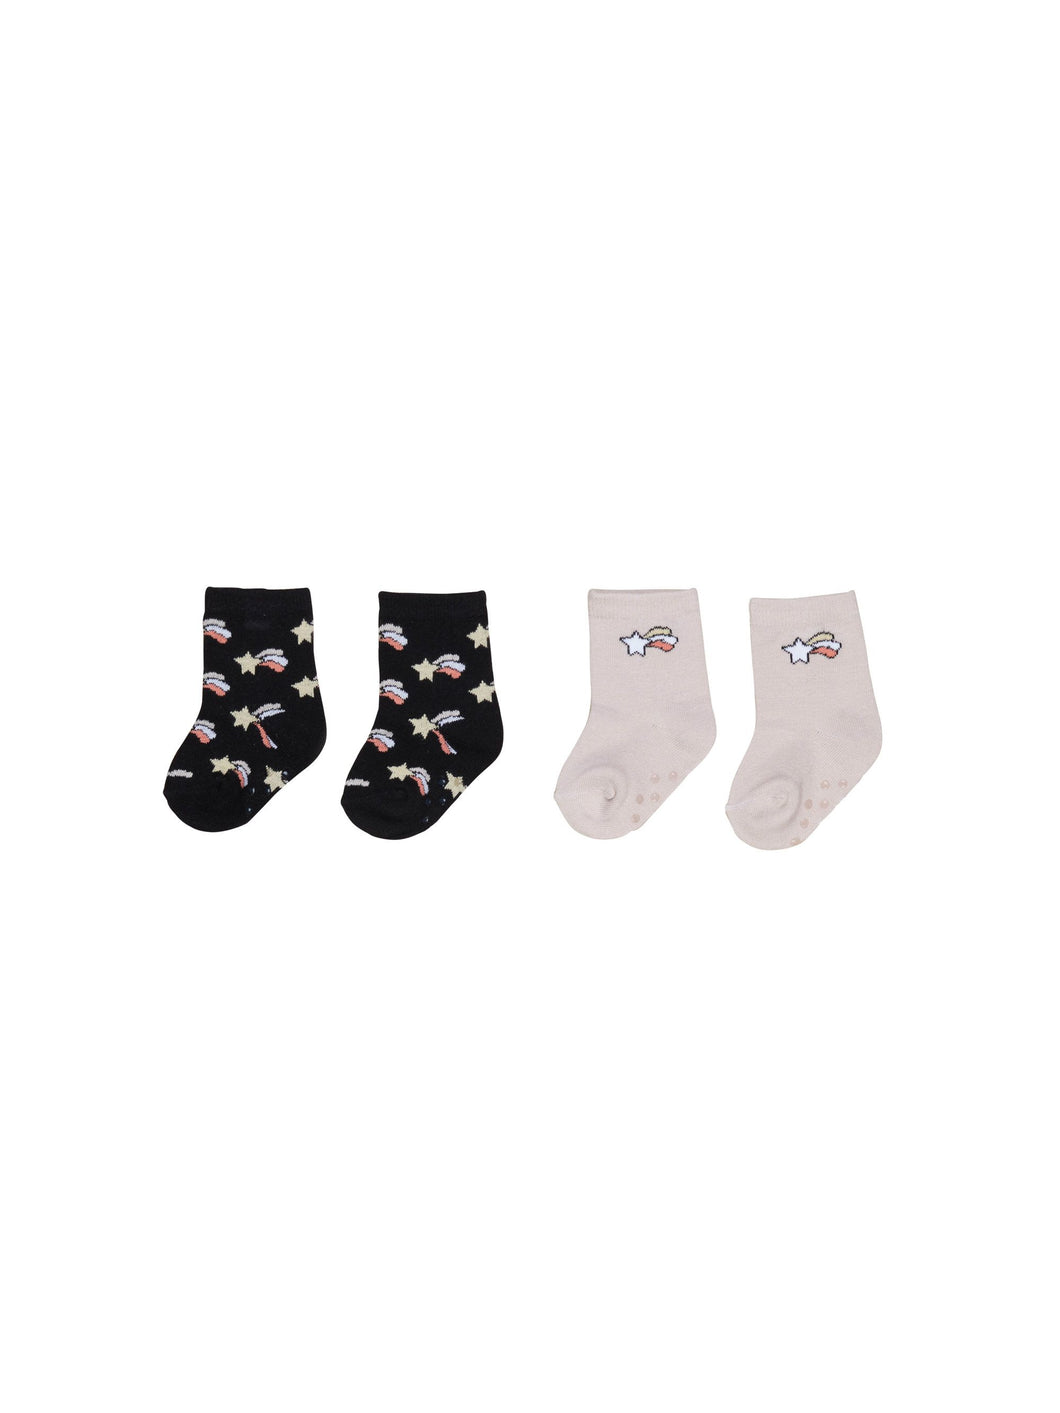 Huxbaby Rose/Starburst 2pk Socks